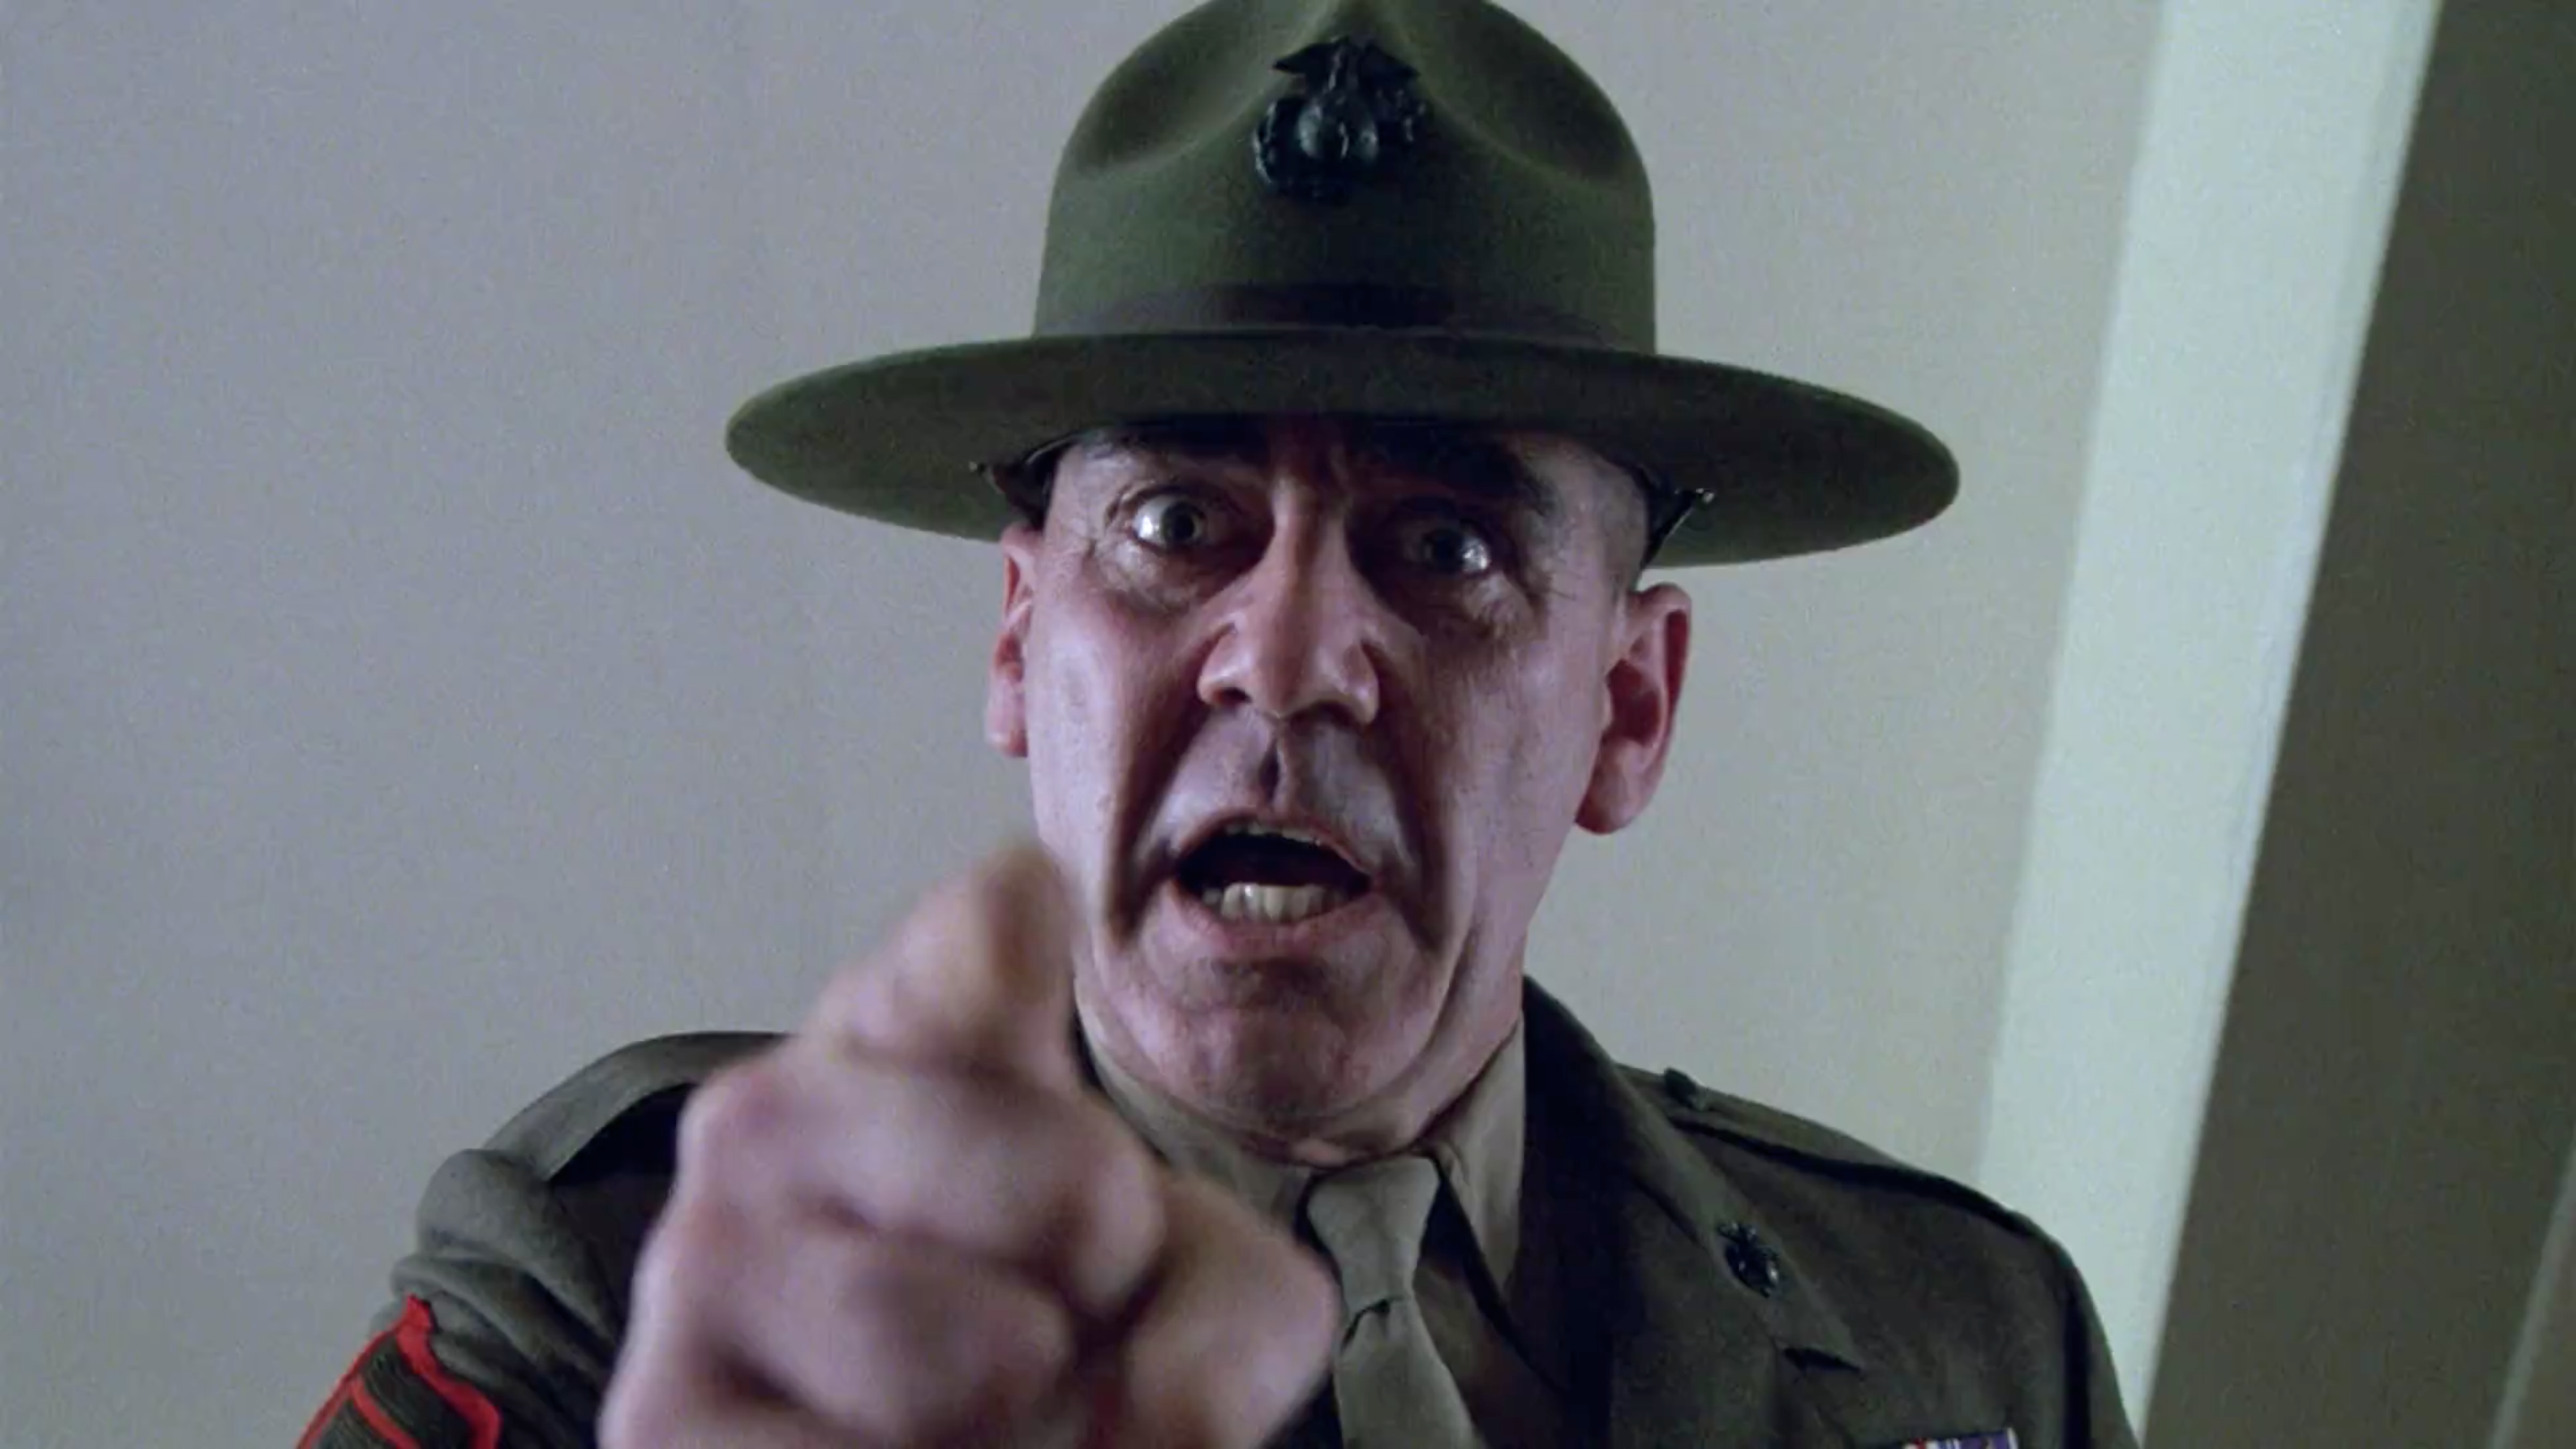 R. Lee Ermey in Stanley Kubrick's Full Metal Jacket, 1987